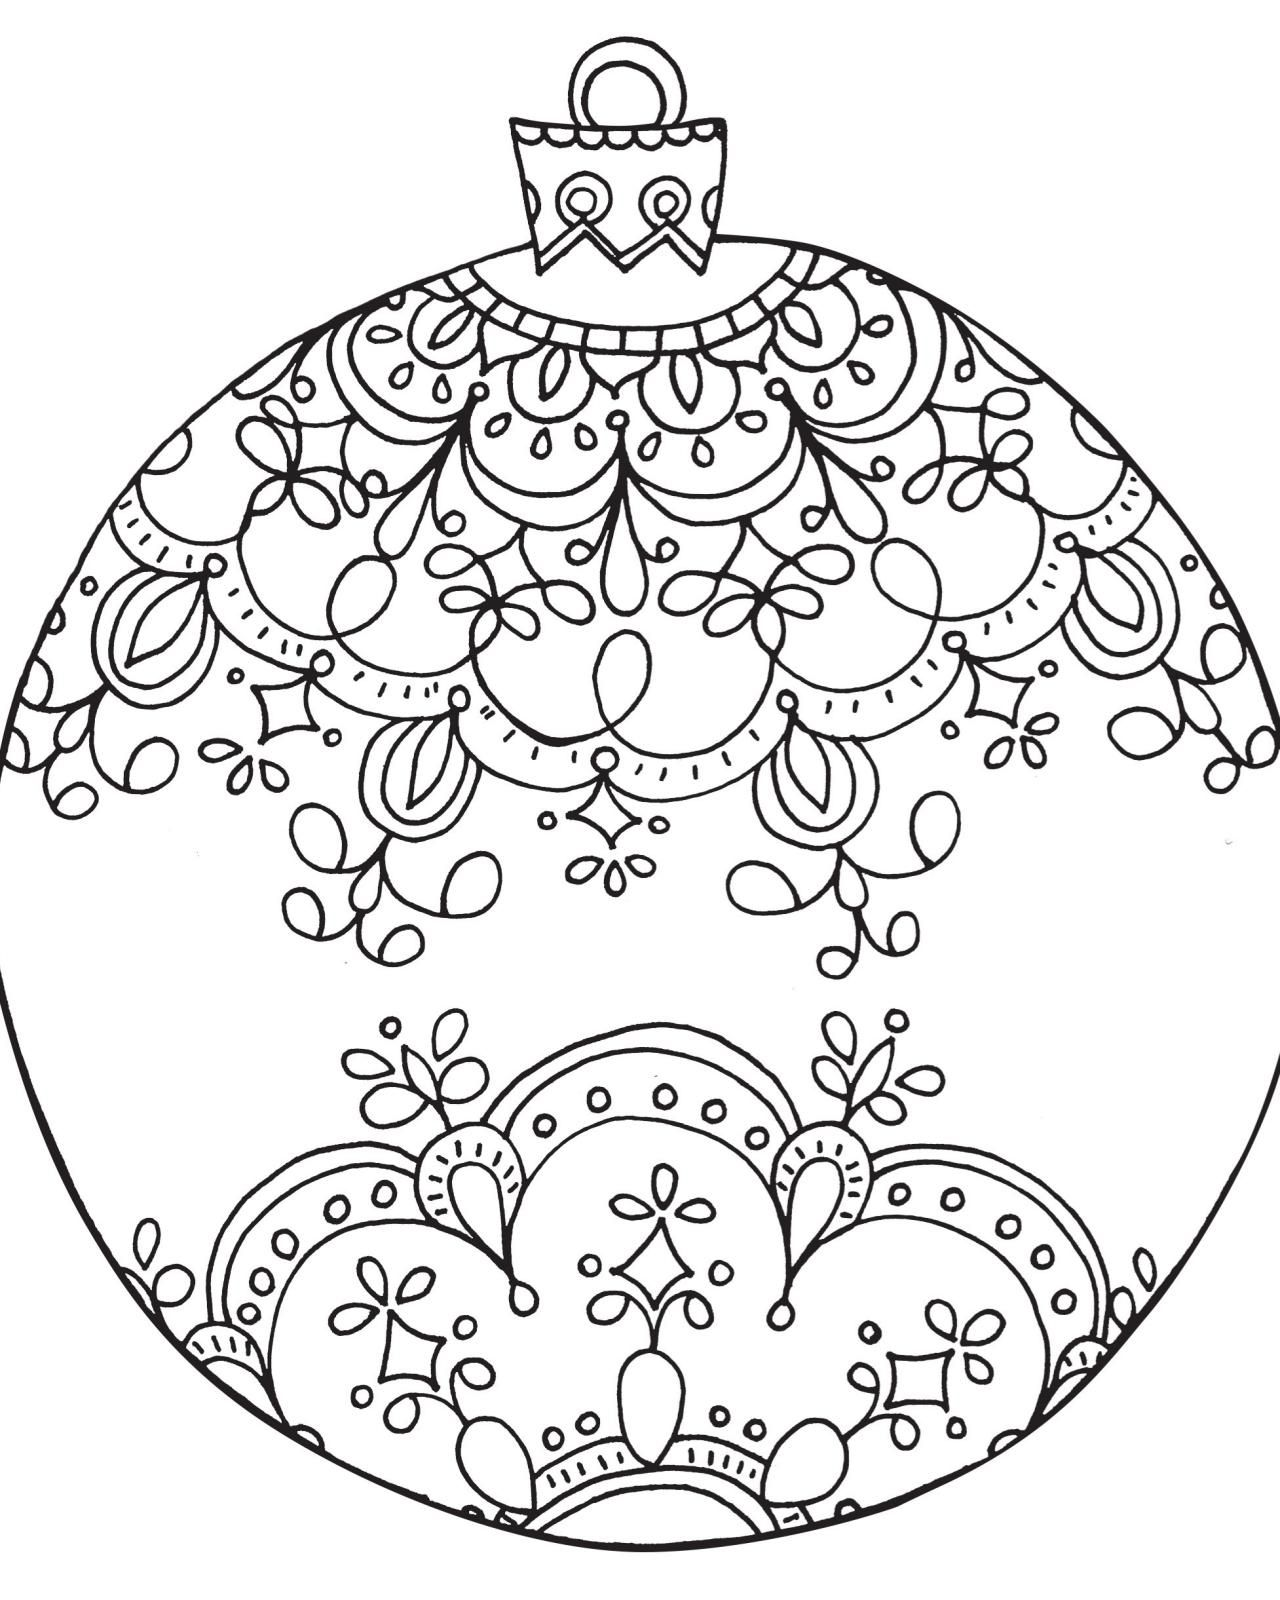 12 Fall Coloring Pages for Adults Pumpkin